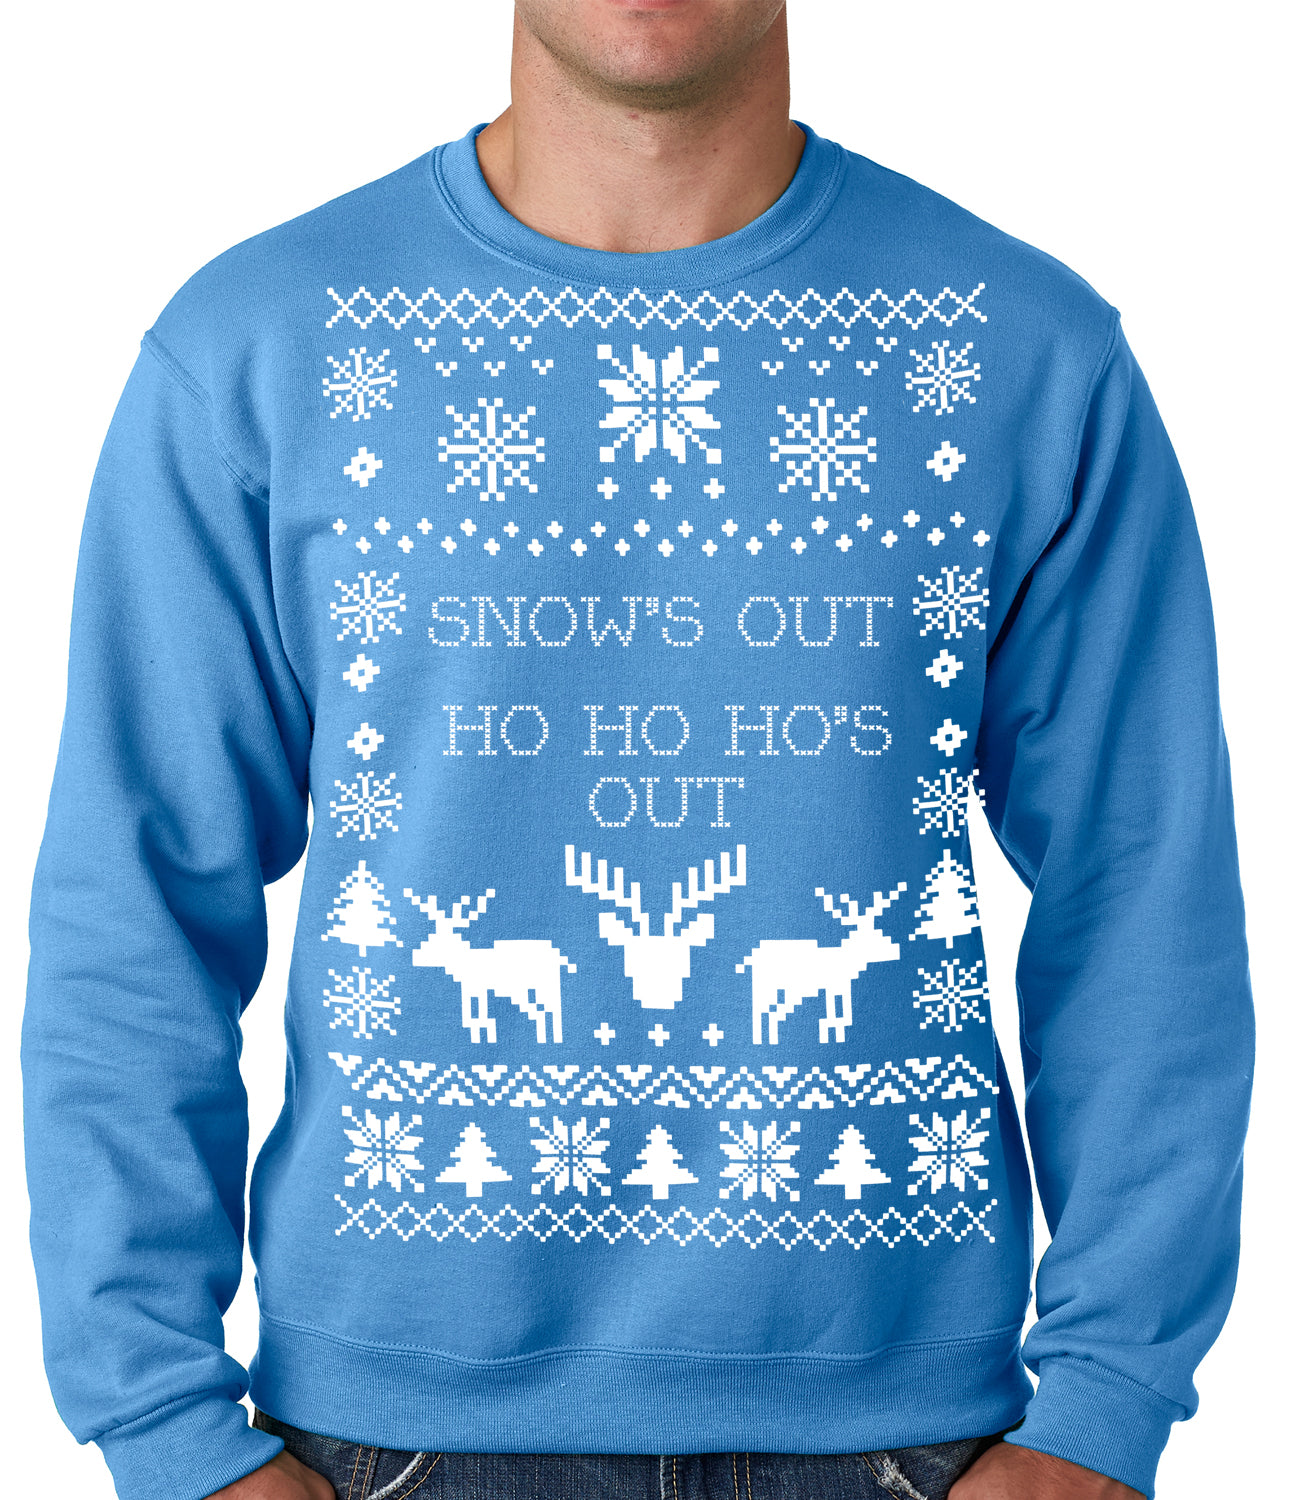 Ugly Christmas Sweater Snows Out Ho Ho Hos Out Adult Crewneck